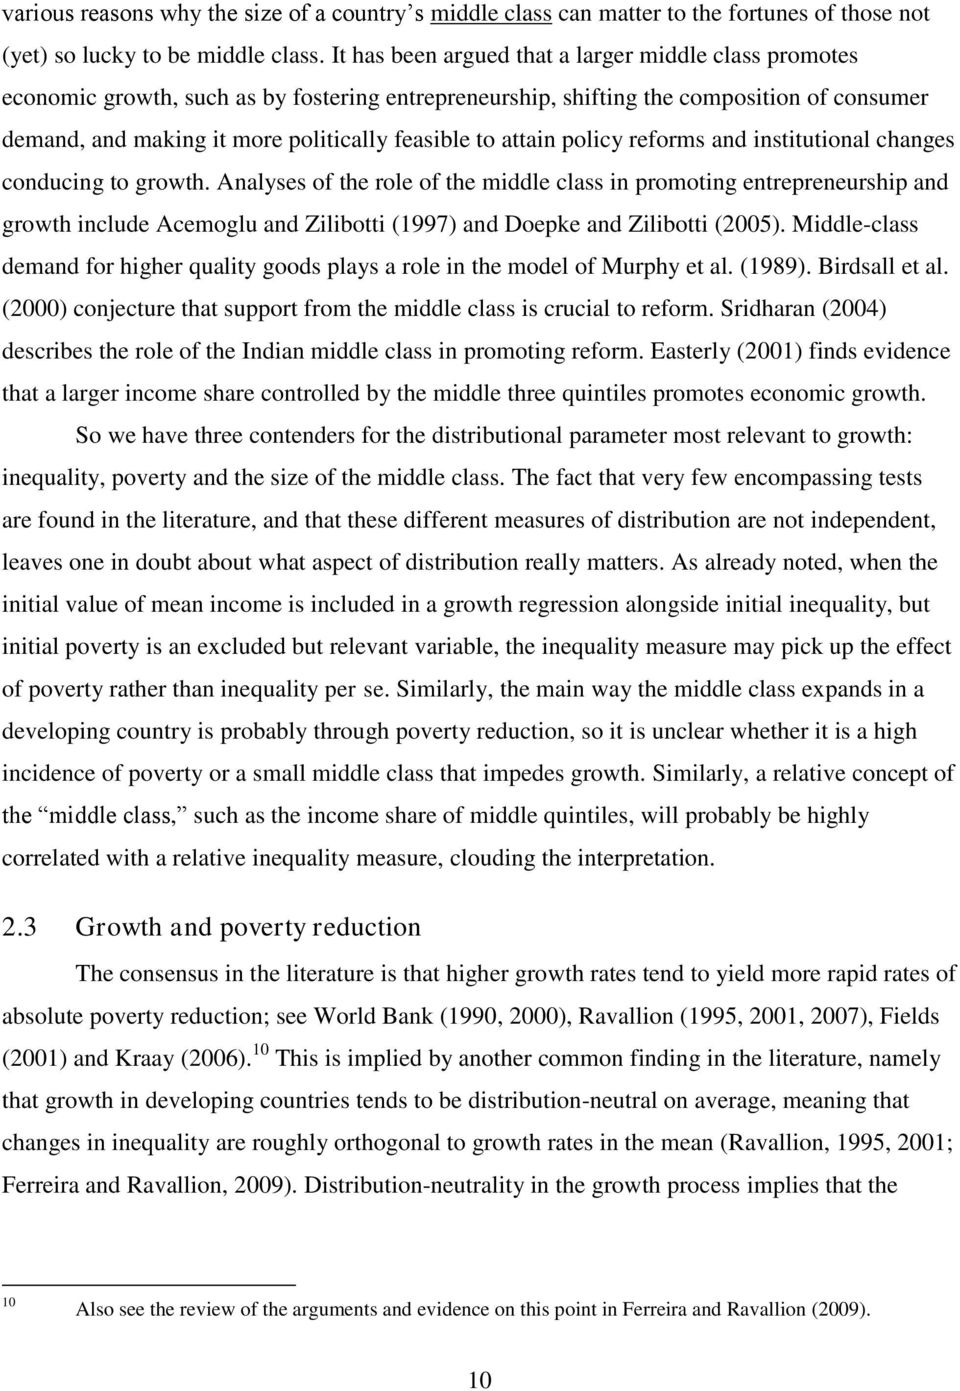 reforms and nstutonal changes conducng to growth. Analyses of the role of the mddle class n promotng entrepreneurshp and growth nclude Acemoglu and Zlbott (1997) and Doepke and Zlbott (2005).